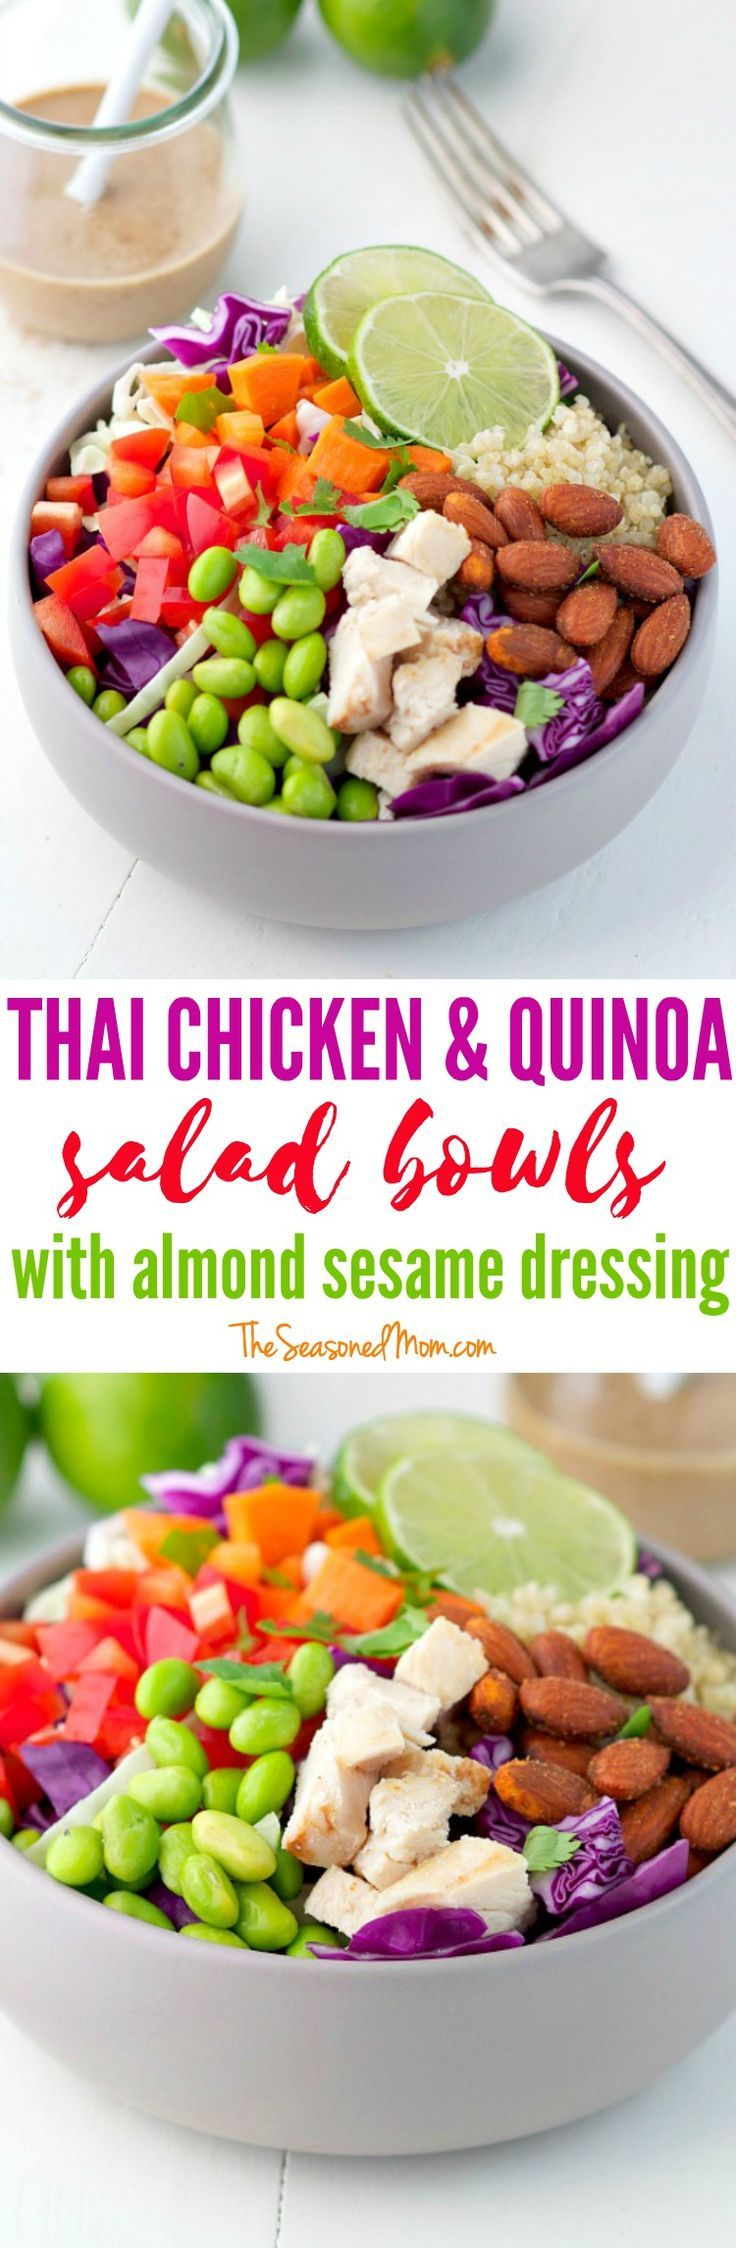 17 Best ideas about Salad Bowls on Pinterest | Easy vegetarian meals ...